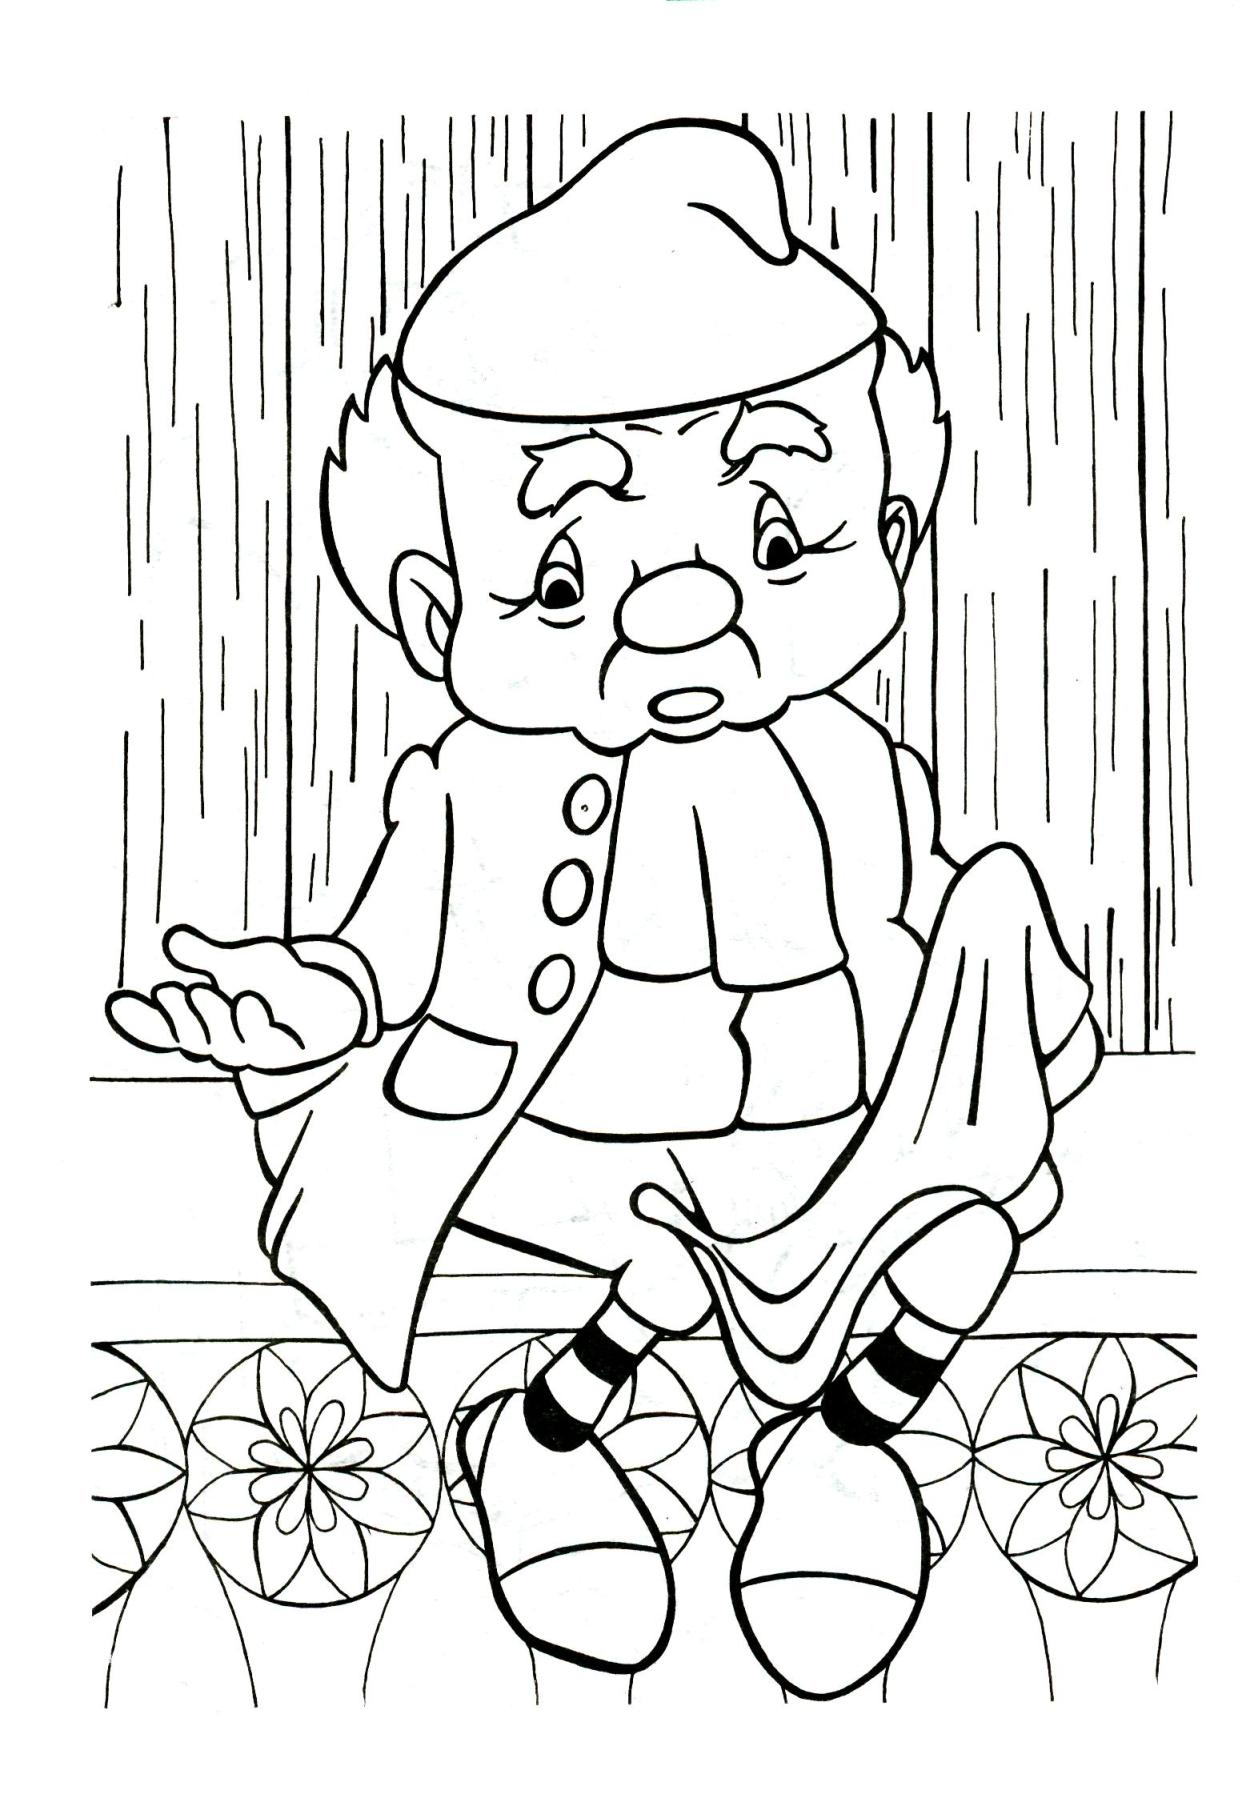 takis coloring pages - photo#8